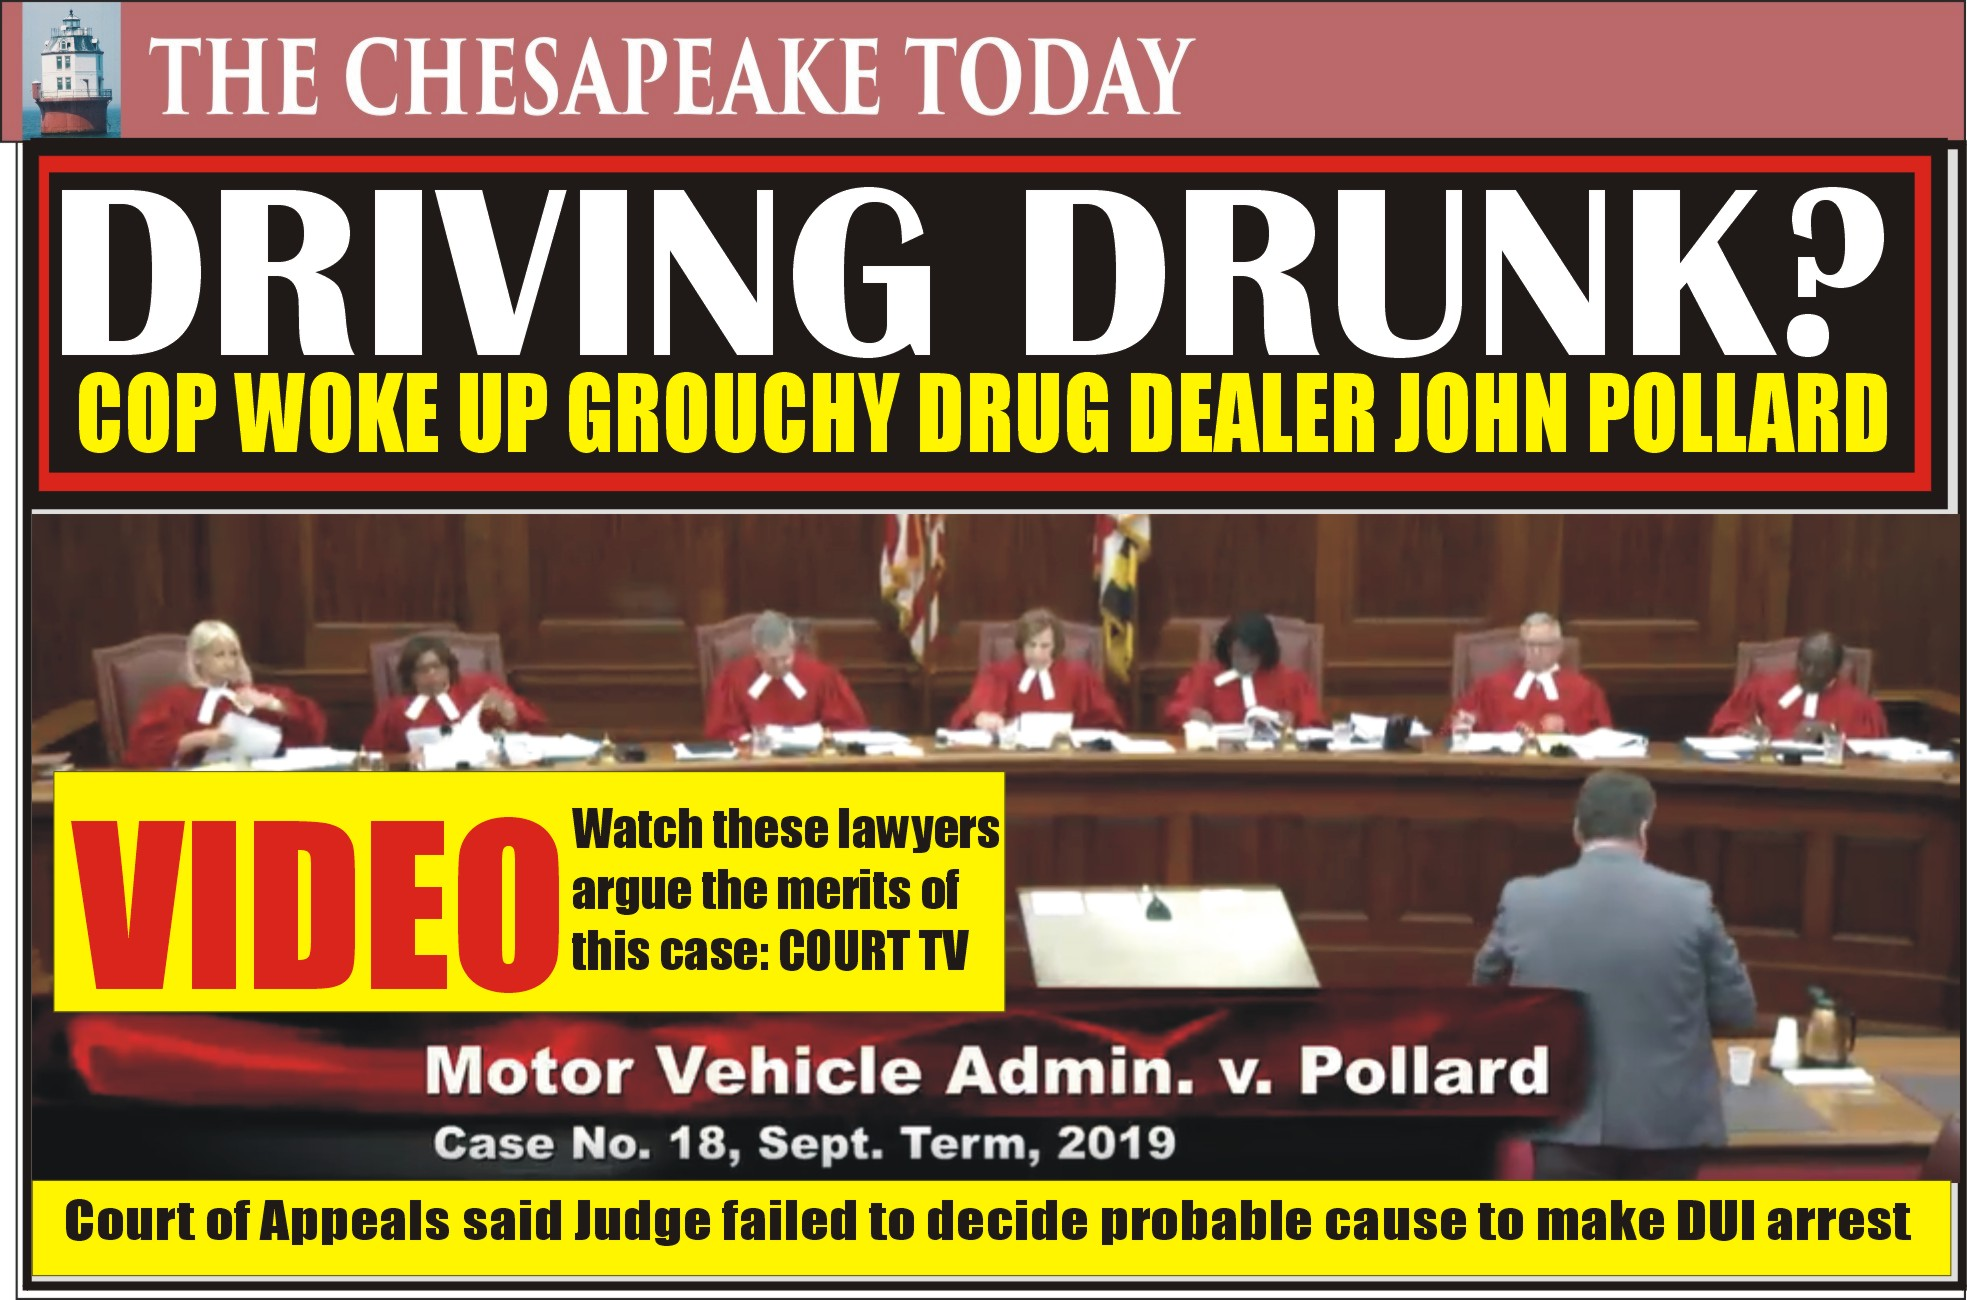 COURT NEWS: Drug Dealer John W. Pollard's adventure of texting, sleeping, and DWI in his all-purpose truck led to hearing in Court of Appeals